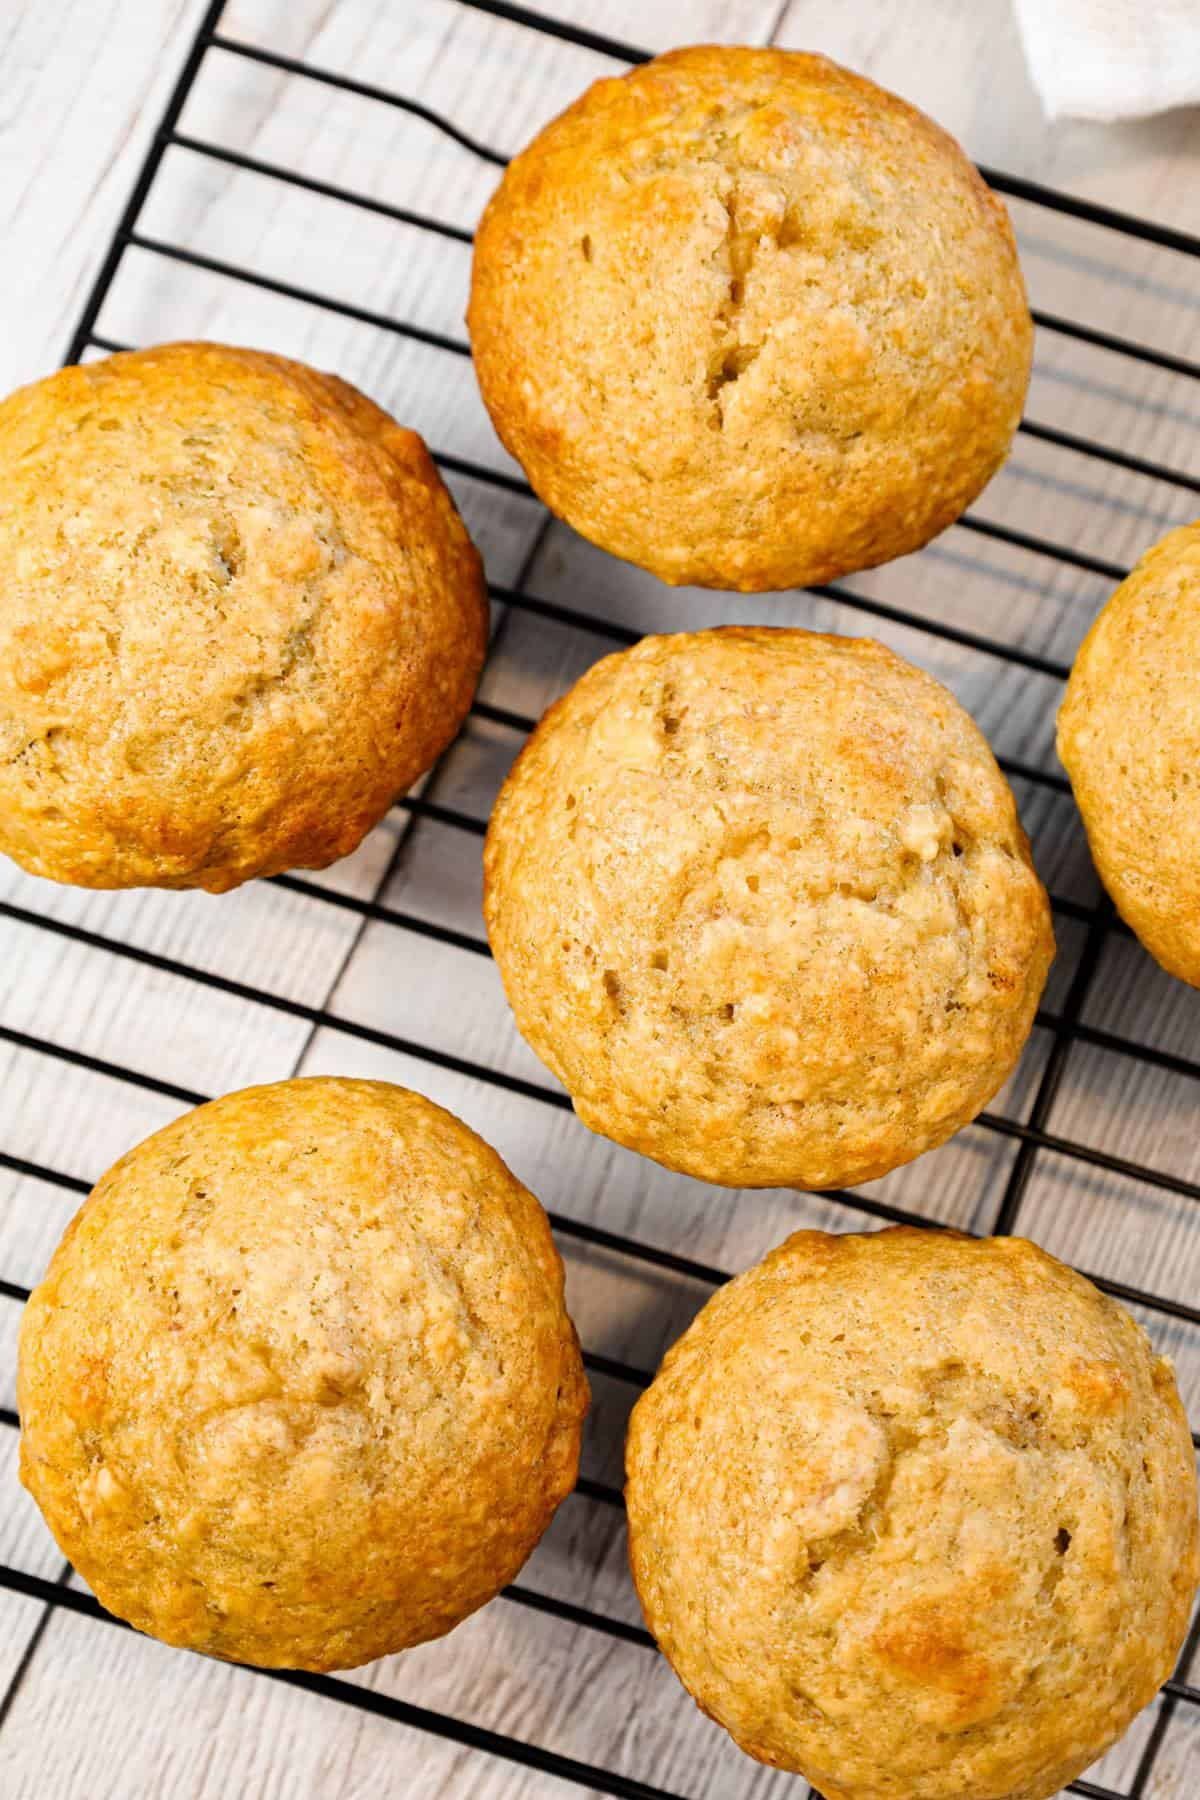 Banana Nut Muffins are delicious homemade banana muffins loaded with chopped walnuts.